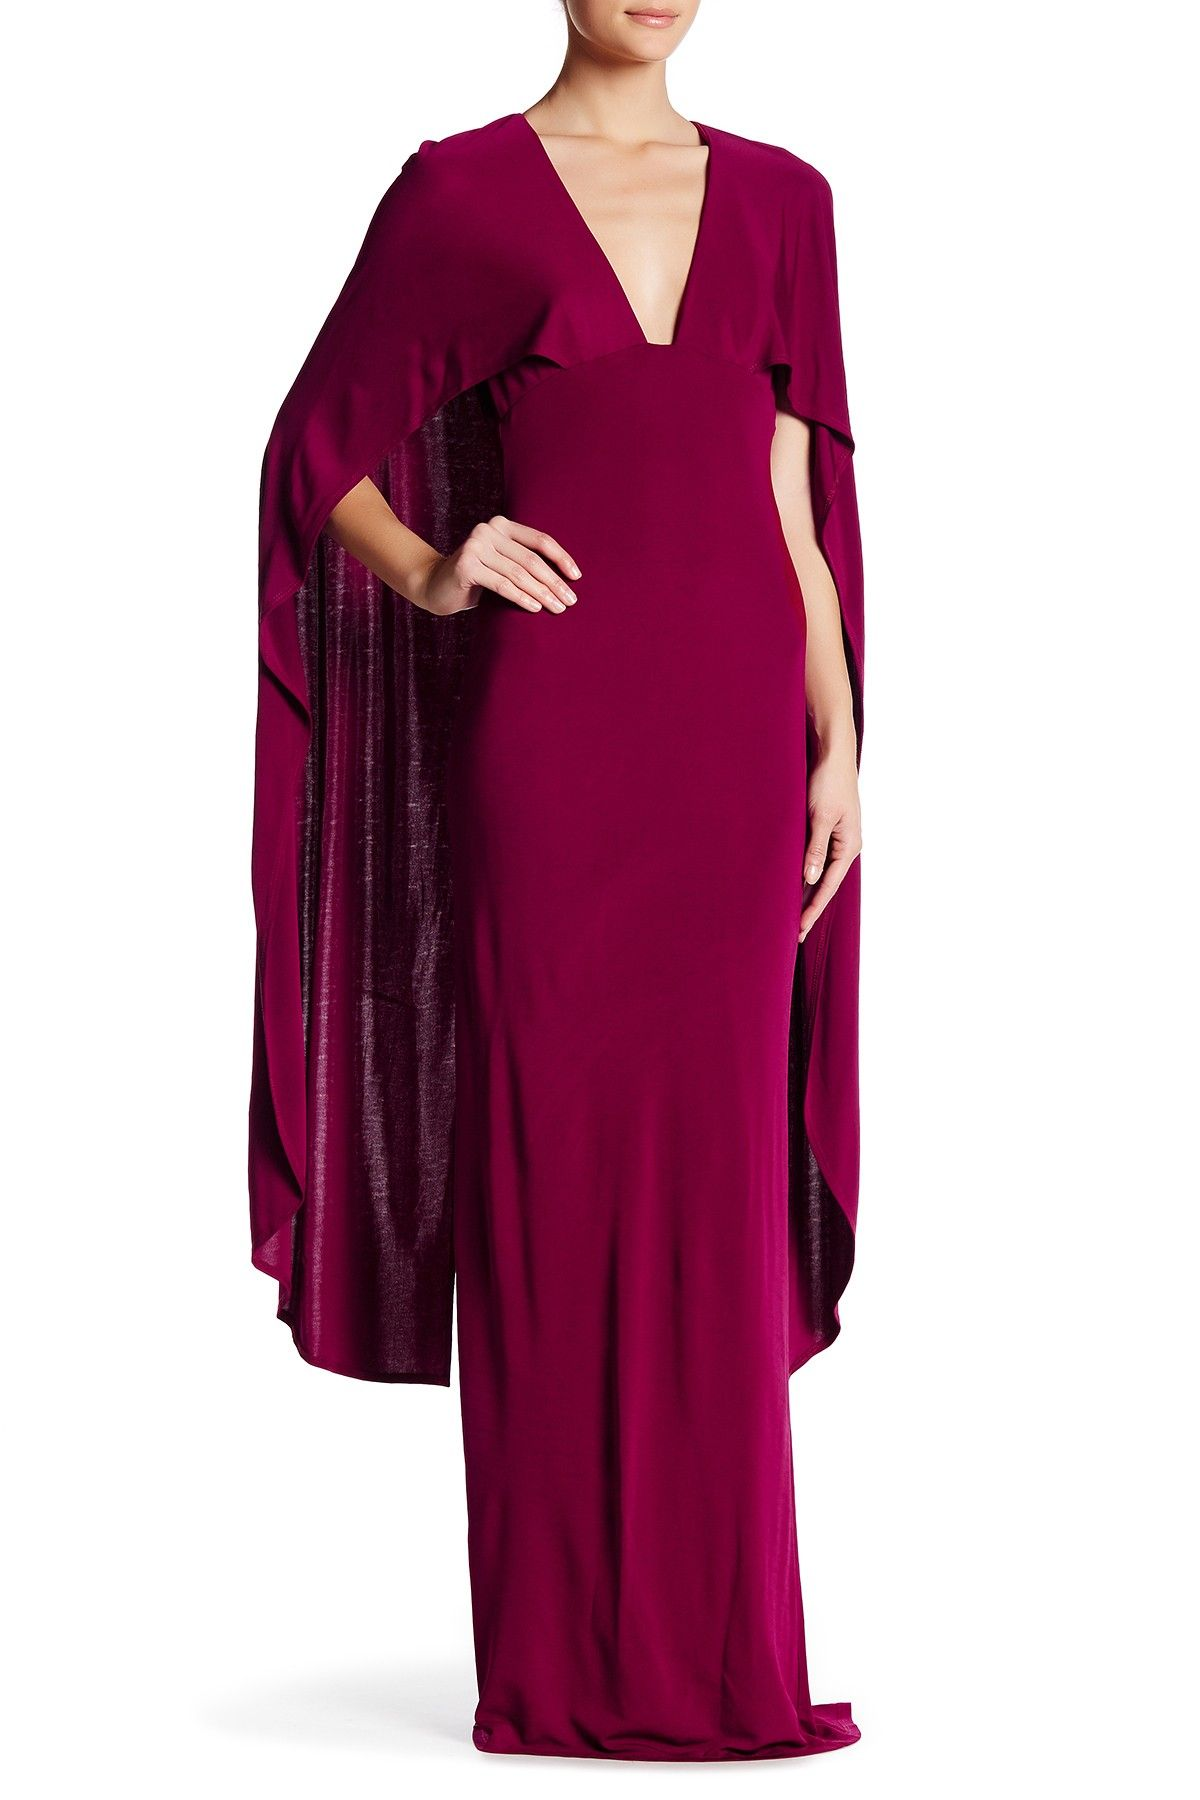 V-Neck Cape Gown   Cape, Free shipping and Products